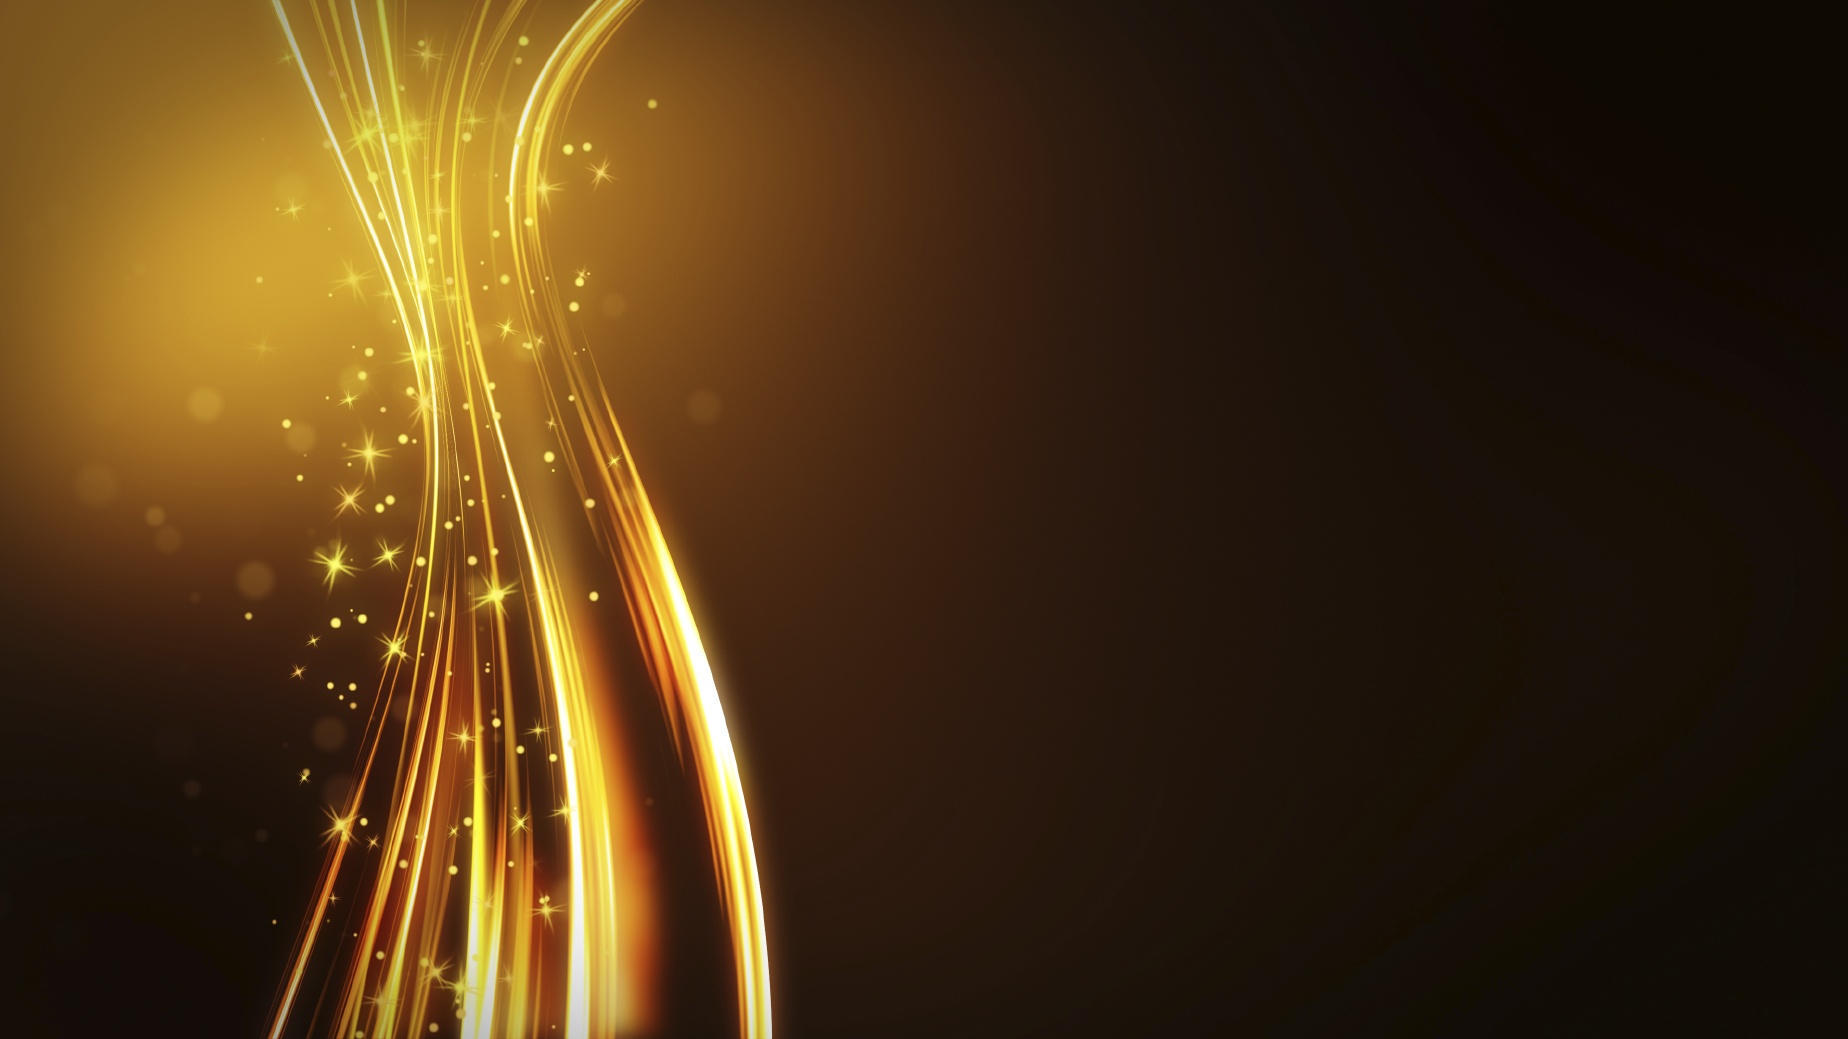 Black Gold Wallpaper - Gold And Black Abstract , HD Wallpaper & Backgrounds